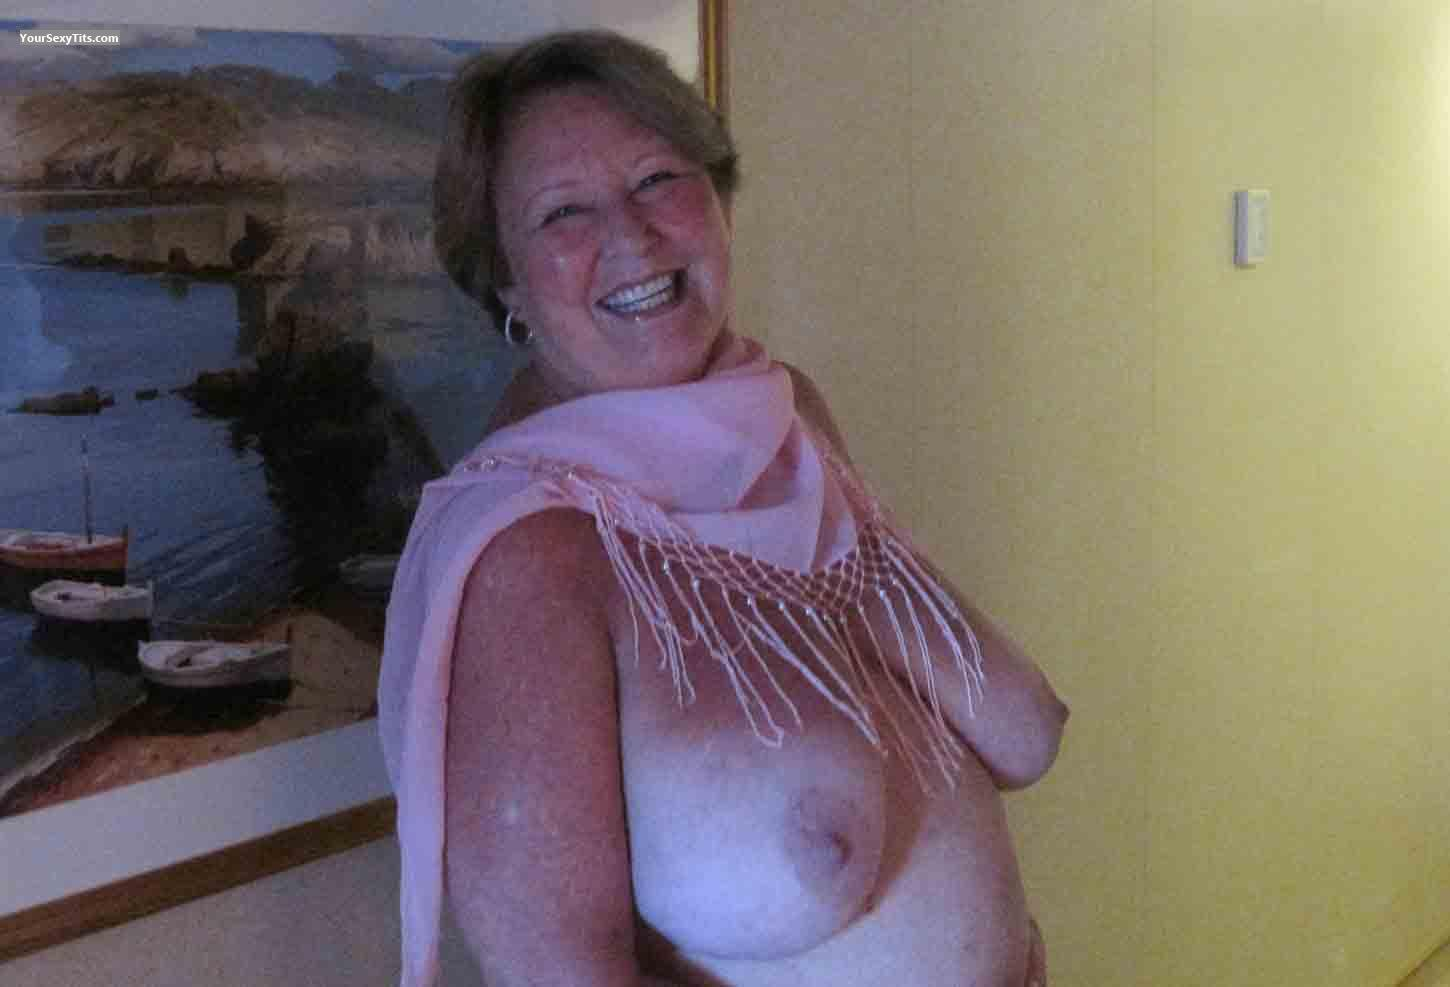 Tit Flash: Big Tits - Topless Ginger from United States